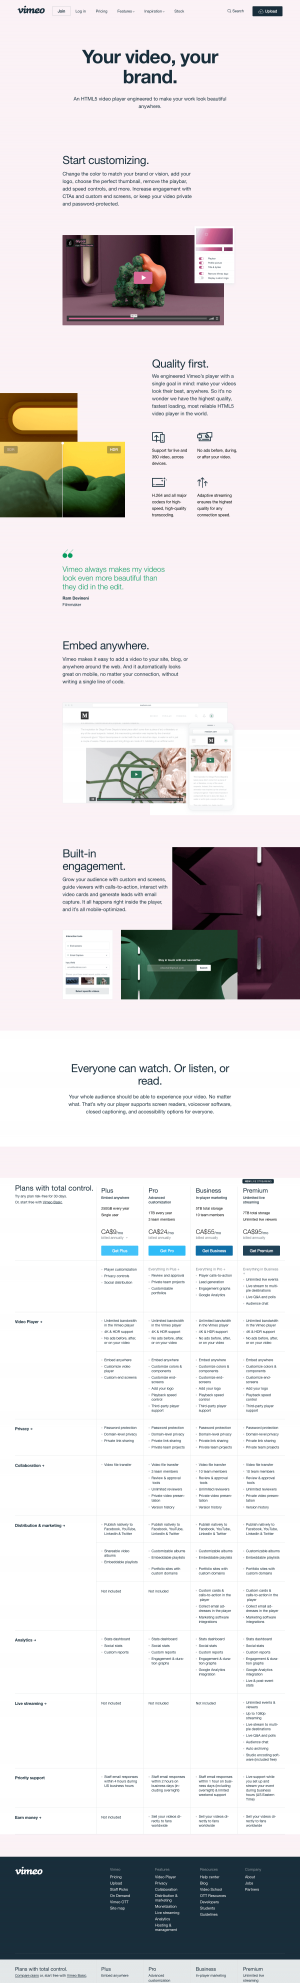 Vimeo - Features page 3